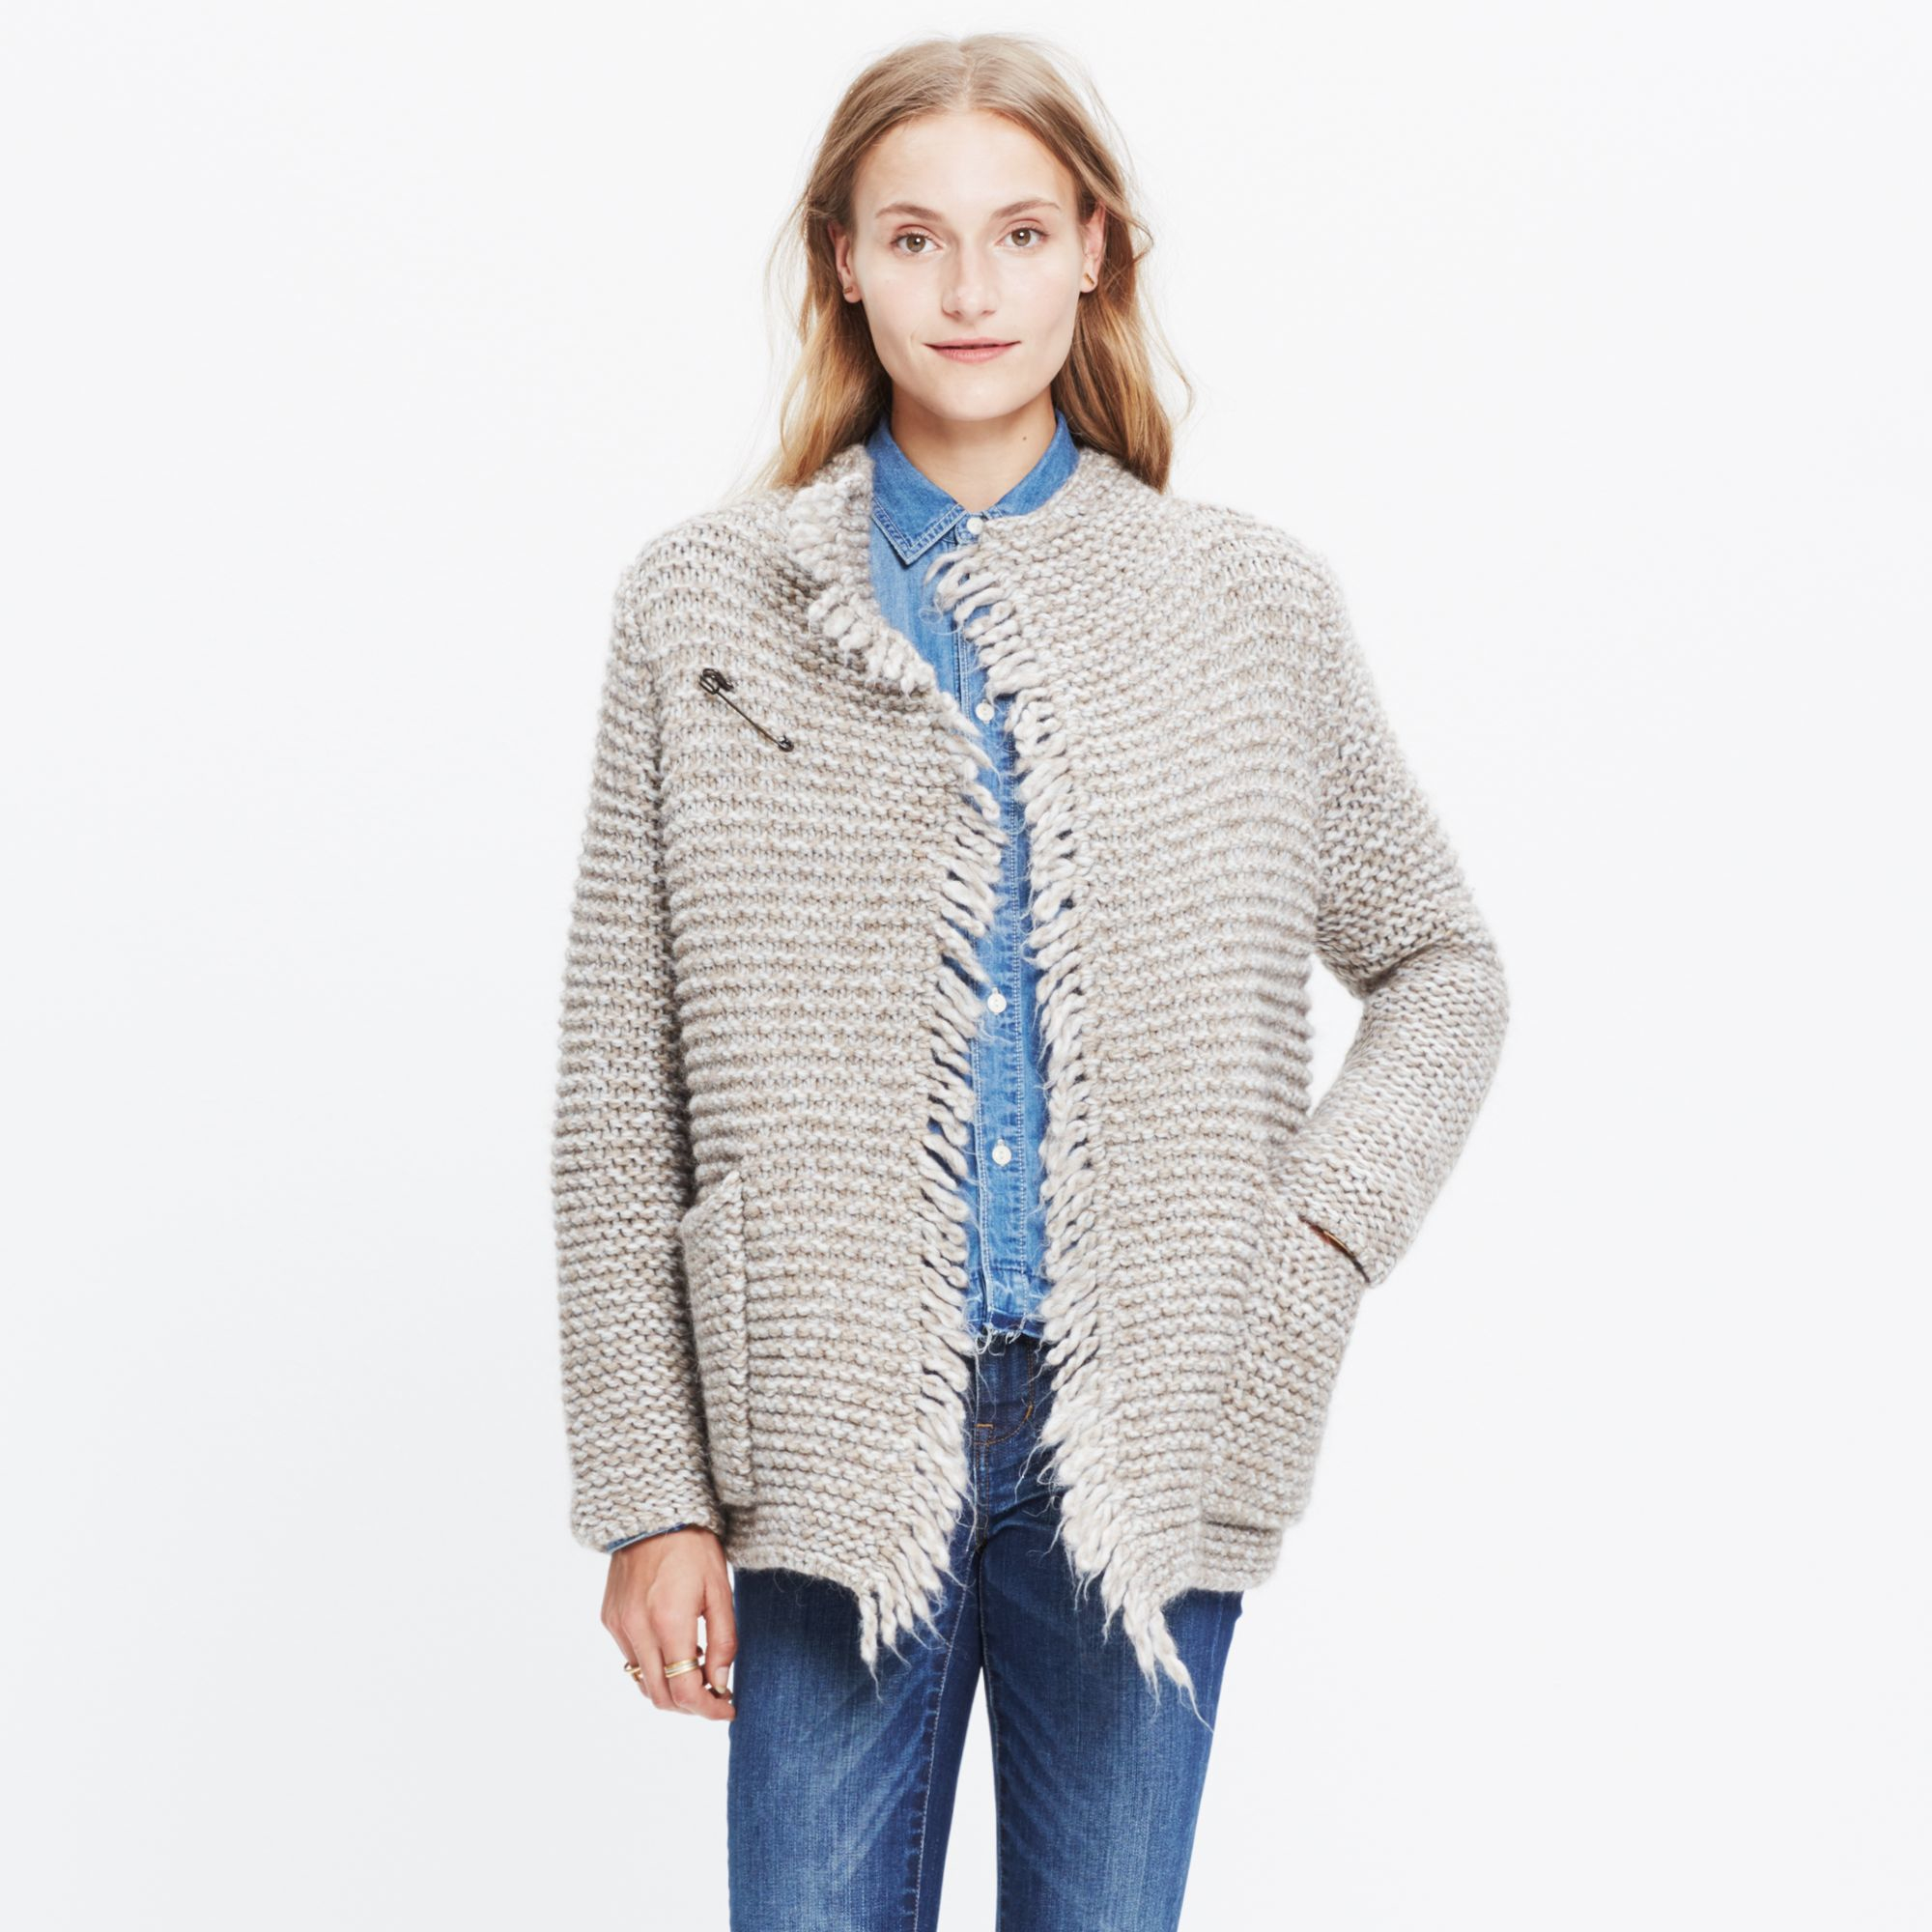 Madewell Fringe Open Cardigan Sweater in Natural   Lyst